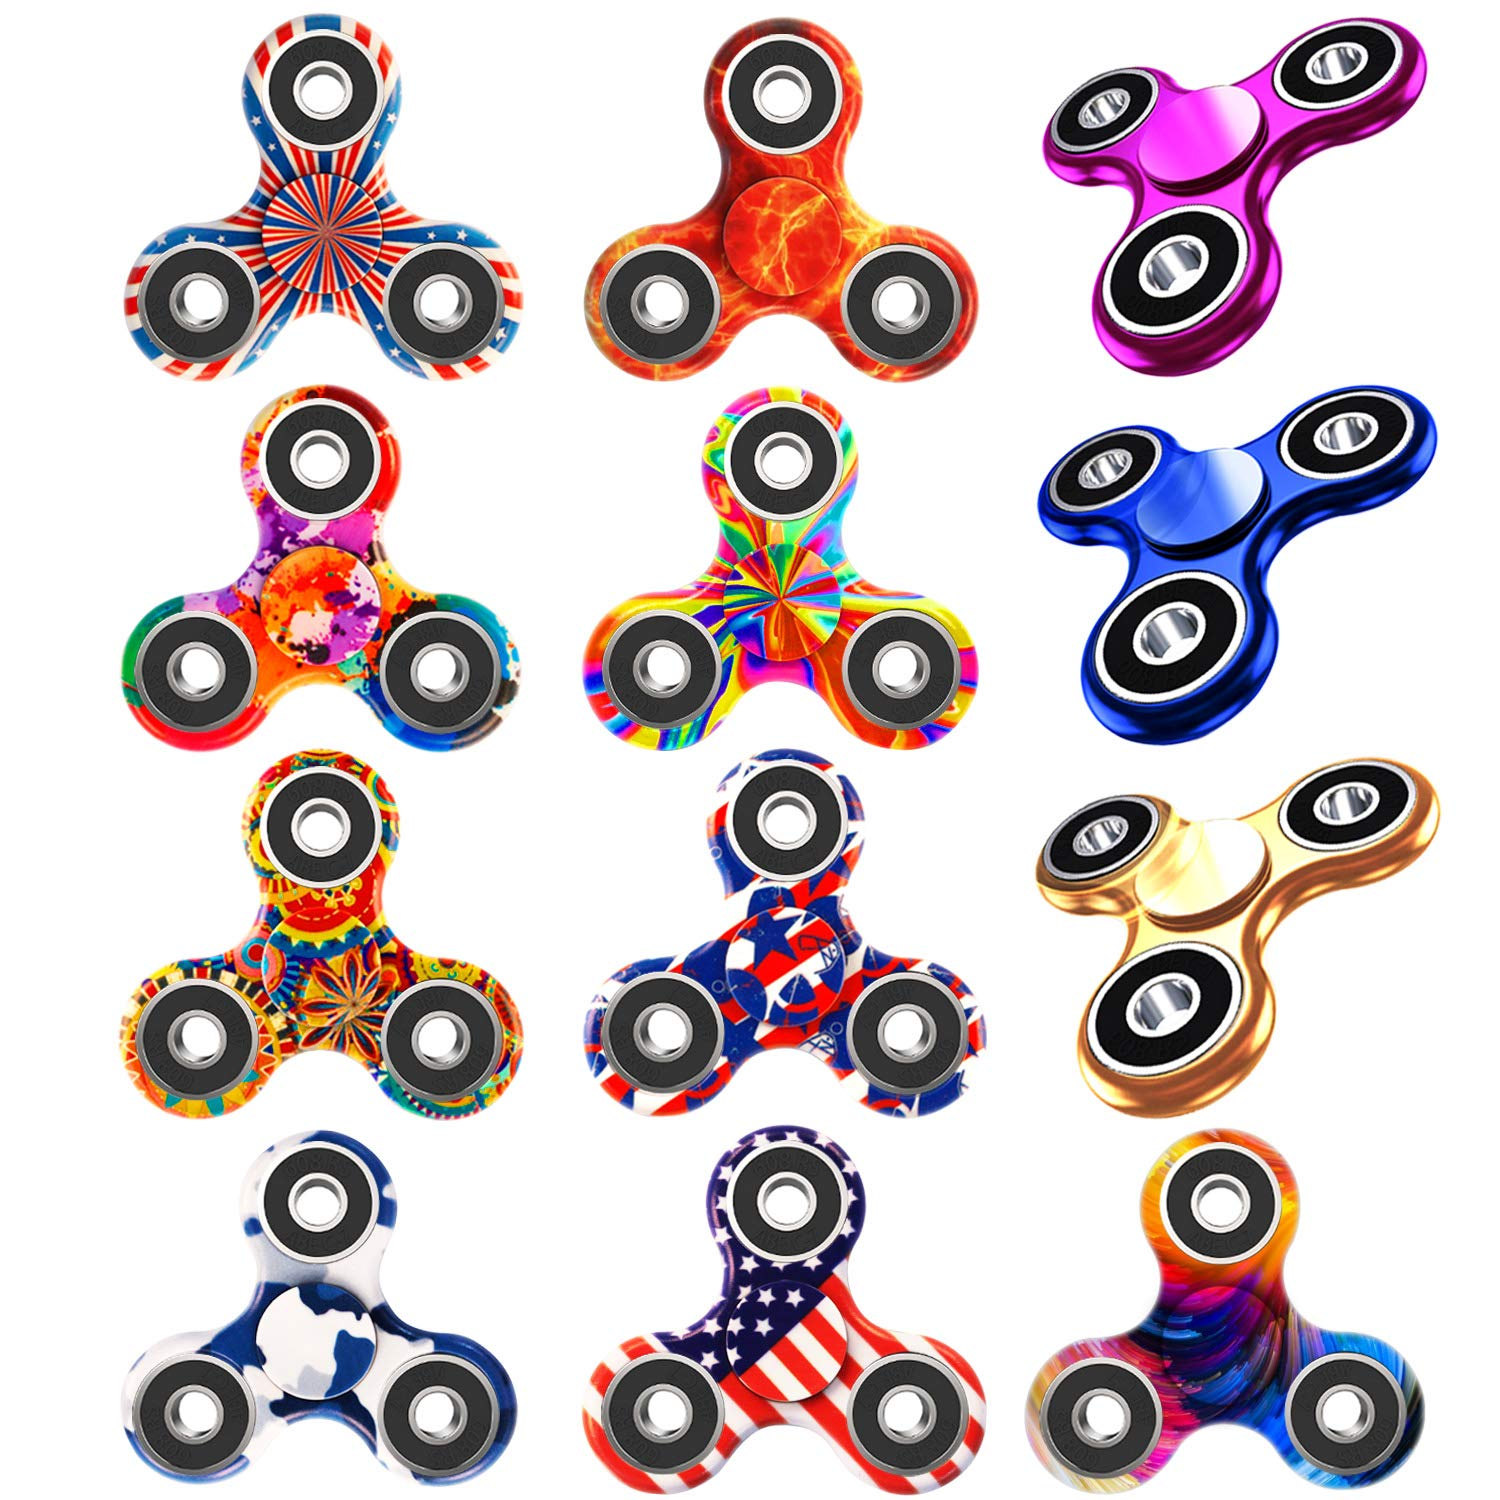 Owen Kyne 12 Pack Fidget Spinner, EDC Hand Tri-Spinner Fidget Stress Relief Toys for Adults and Kids, All-in-one Design 2-3 Min Spins,Relieves Your ADD ADHD Autism